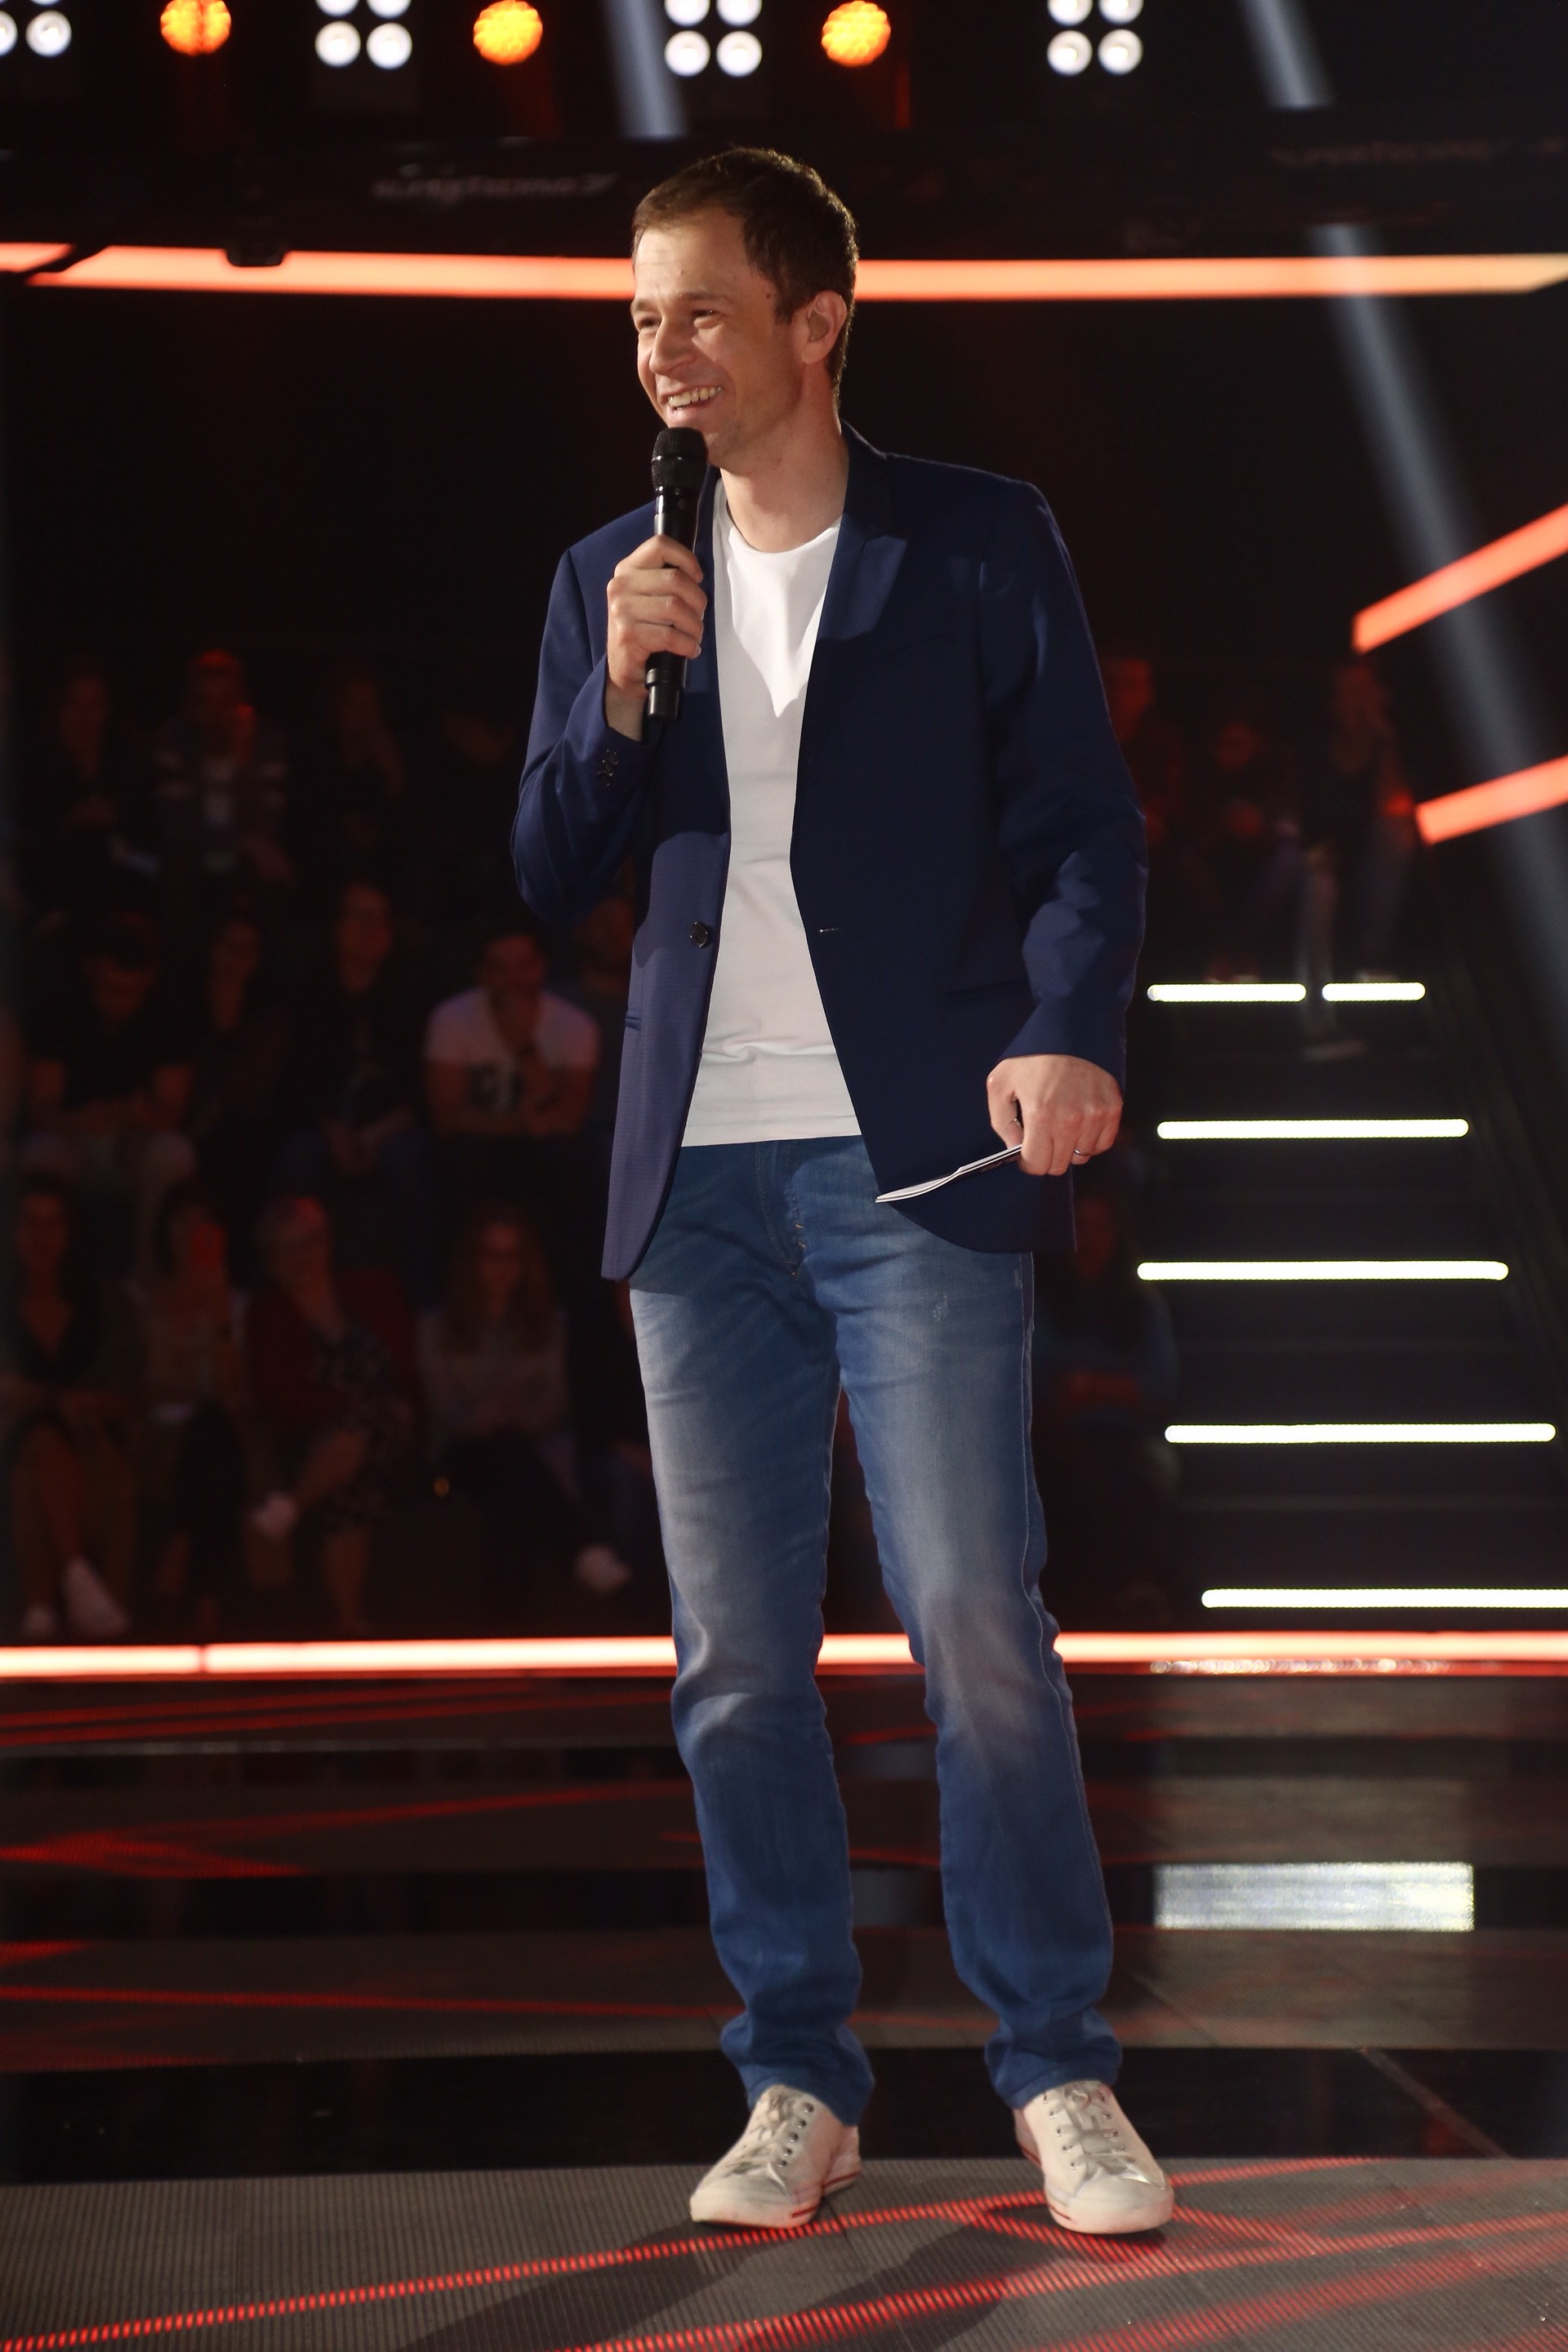 Tiago Leifert nas gravações do The Voice (Foto: AgNews)